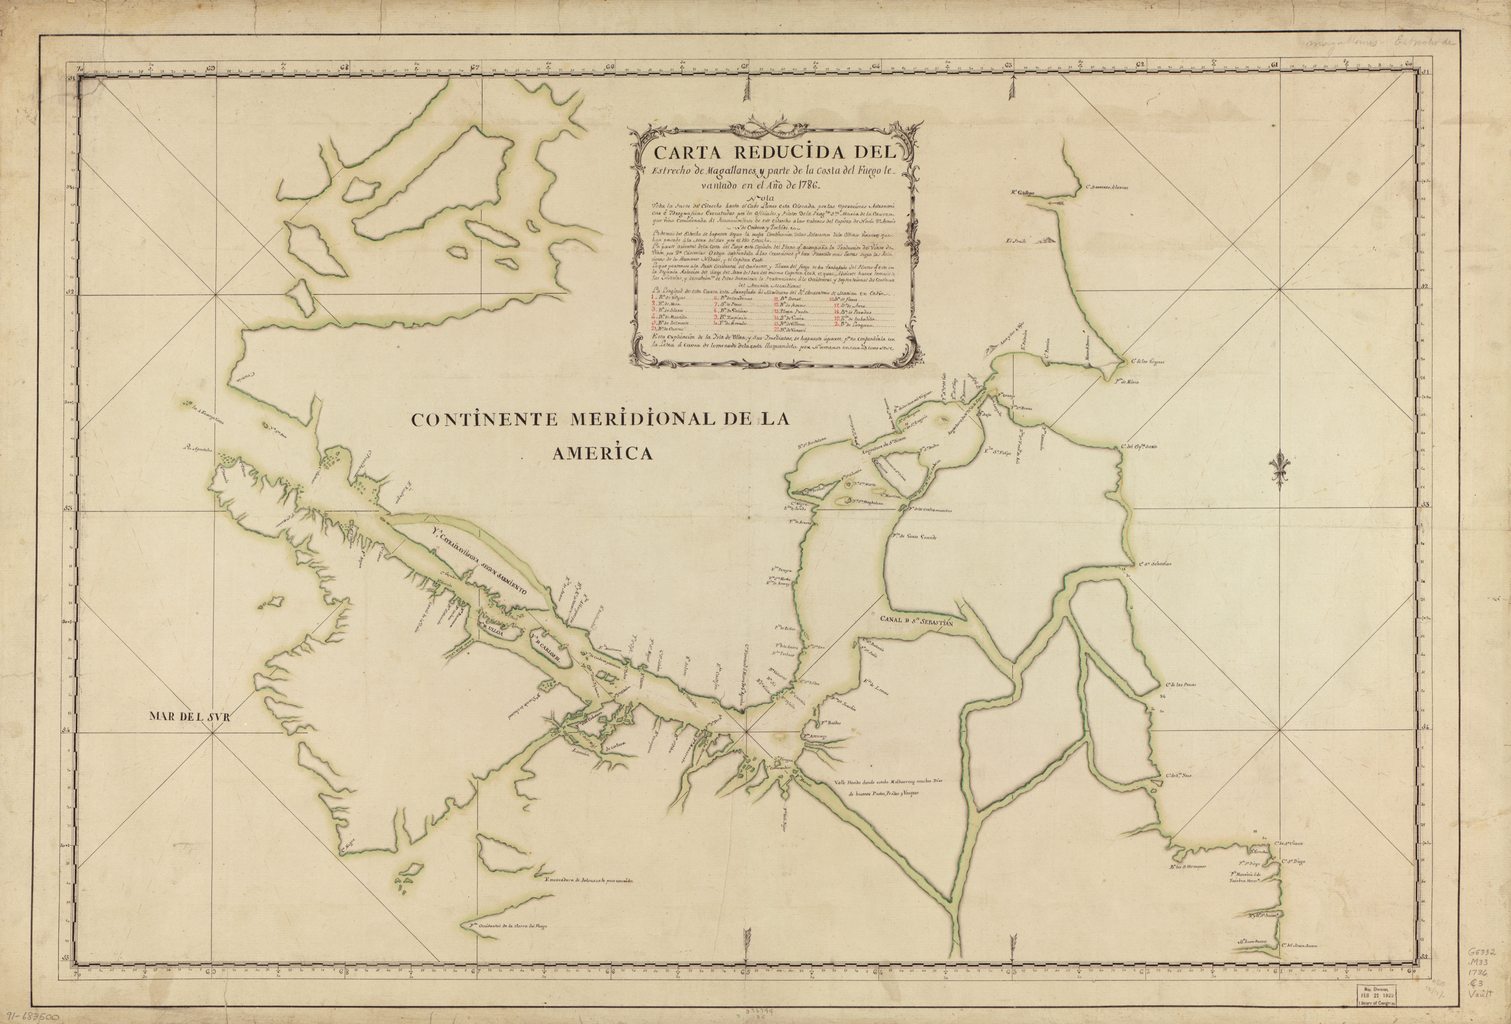 """""""Map of the Straits of Magellan and Part of the Land of Fire, Prepared in 1786"""" from Antonio de Córdoba's expedition, the first scientific mapping of the region. Available at World Digital Library: http://www.wdl.org/en/item/52/"""